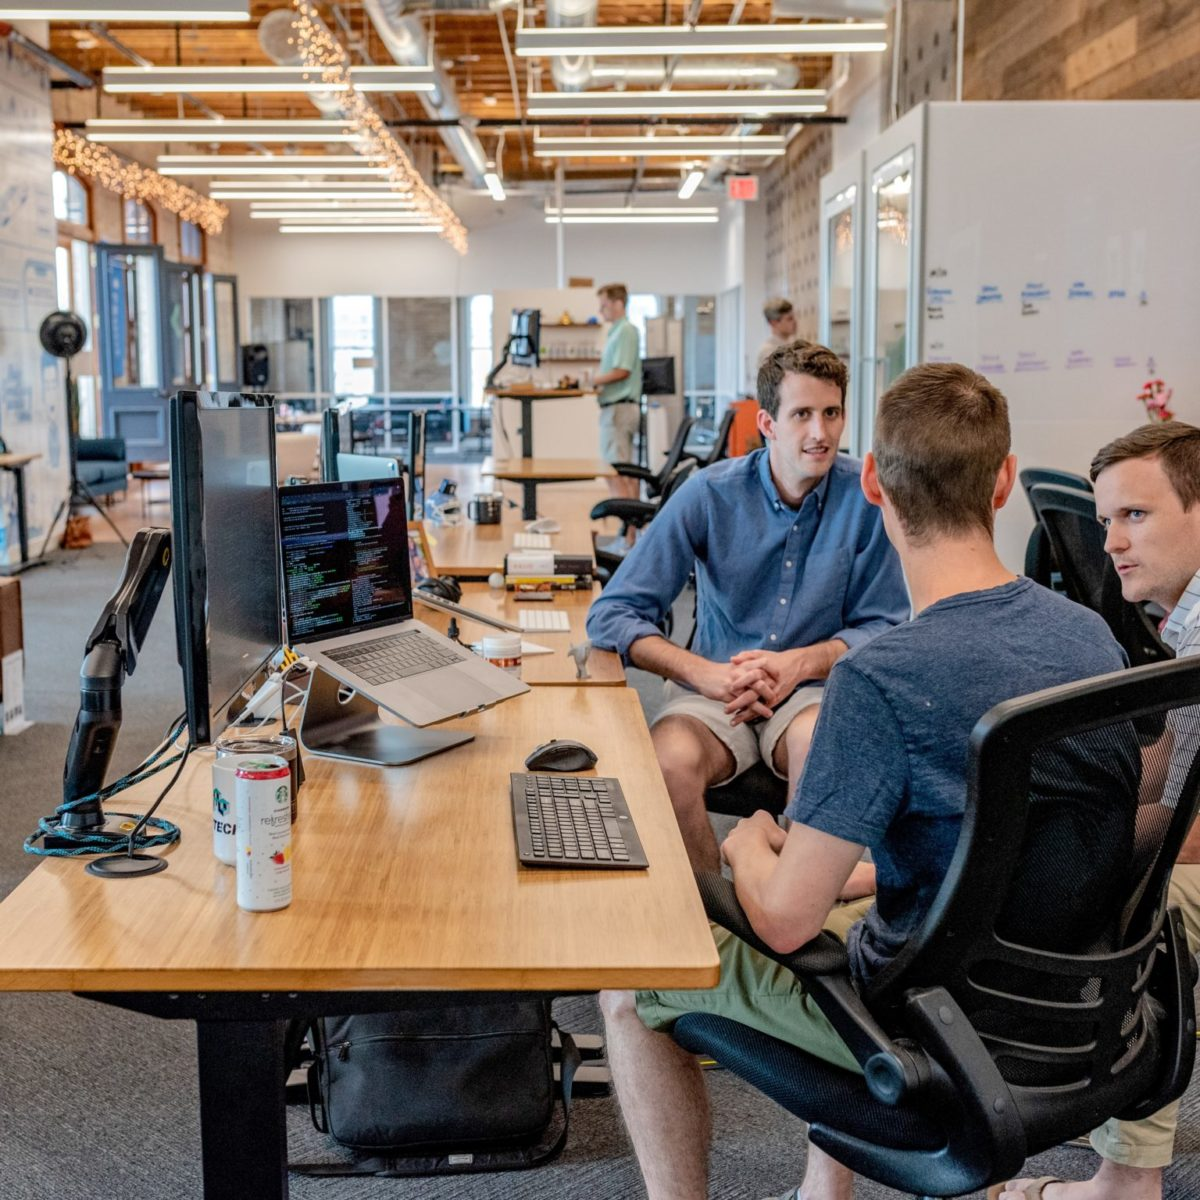 A team working together in the office